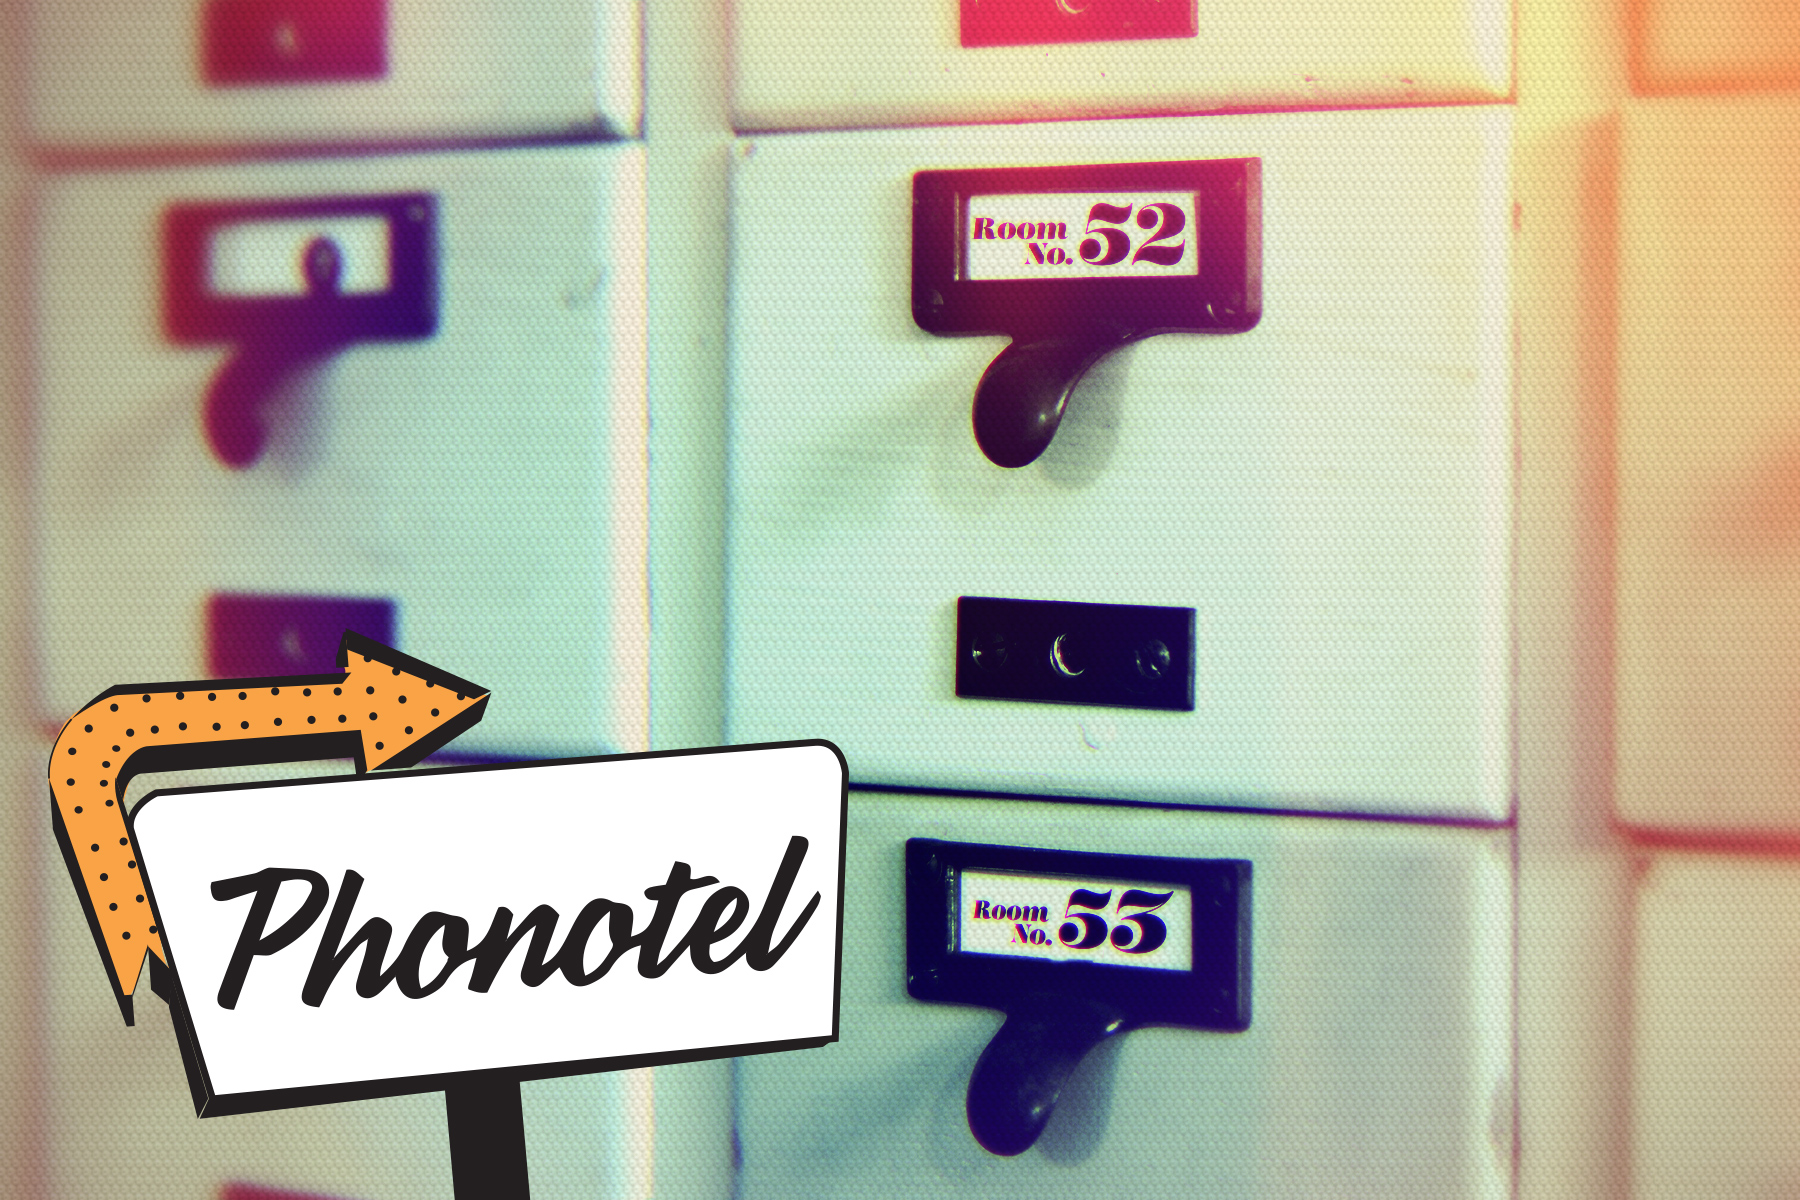 The Phonotel @ Modern Art: 529 West Chestnut St, Lancaster, PA 17603